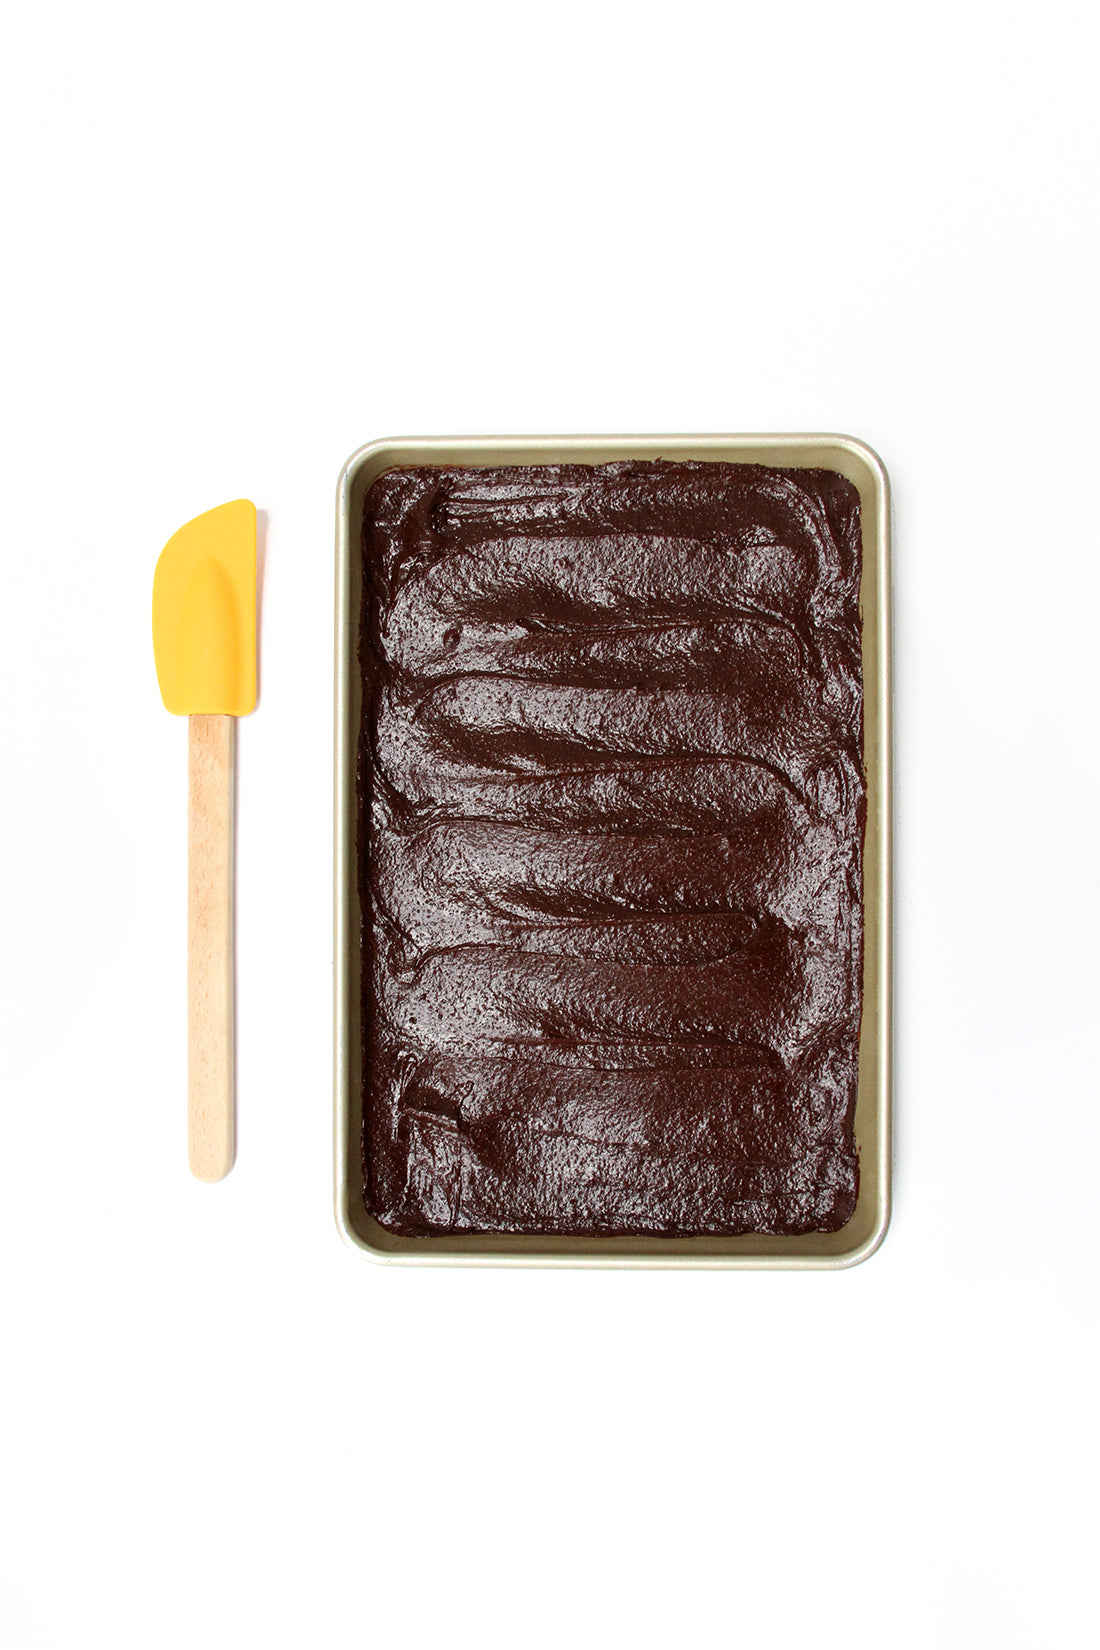 Image from above of brownie batter on a baking sheet next to a yellow spatula used for Miss Jones Baking Co Coffee Break Shake